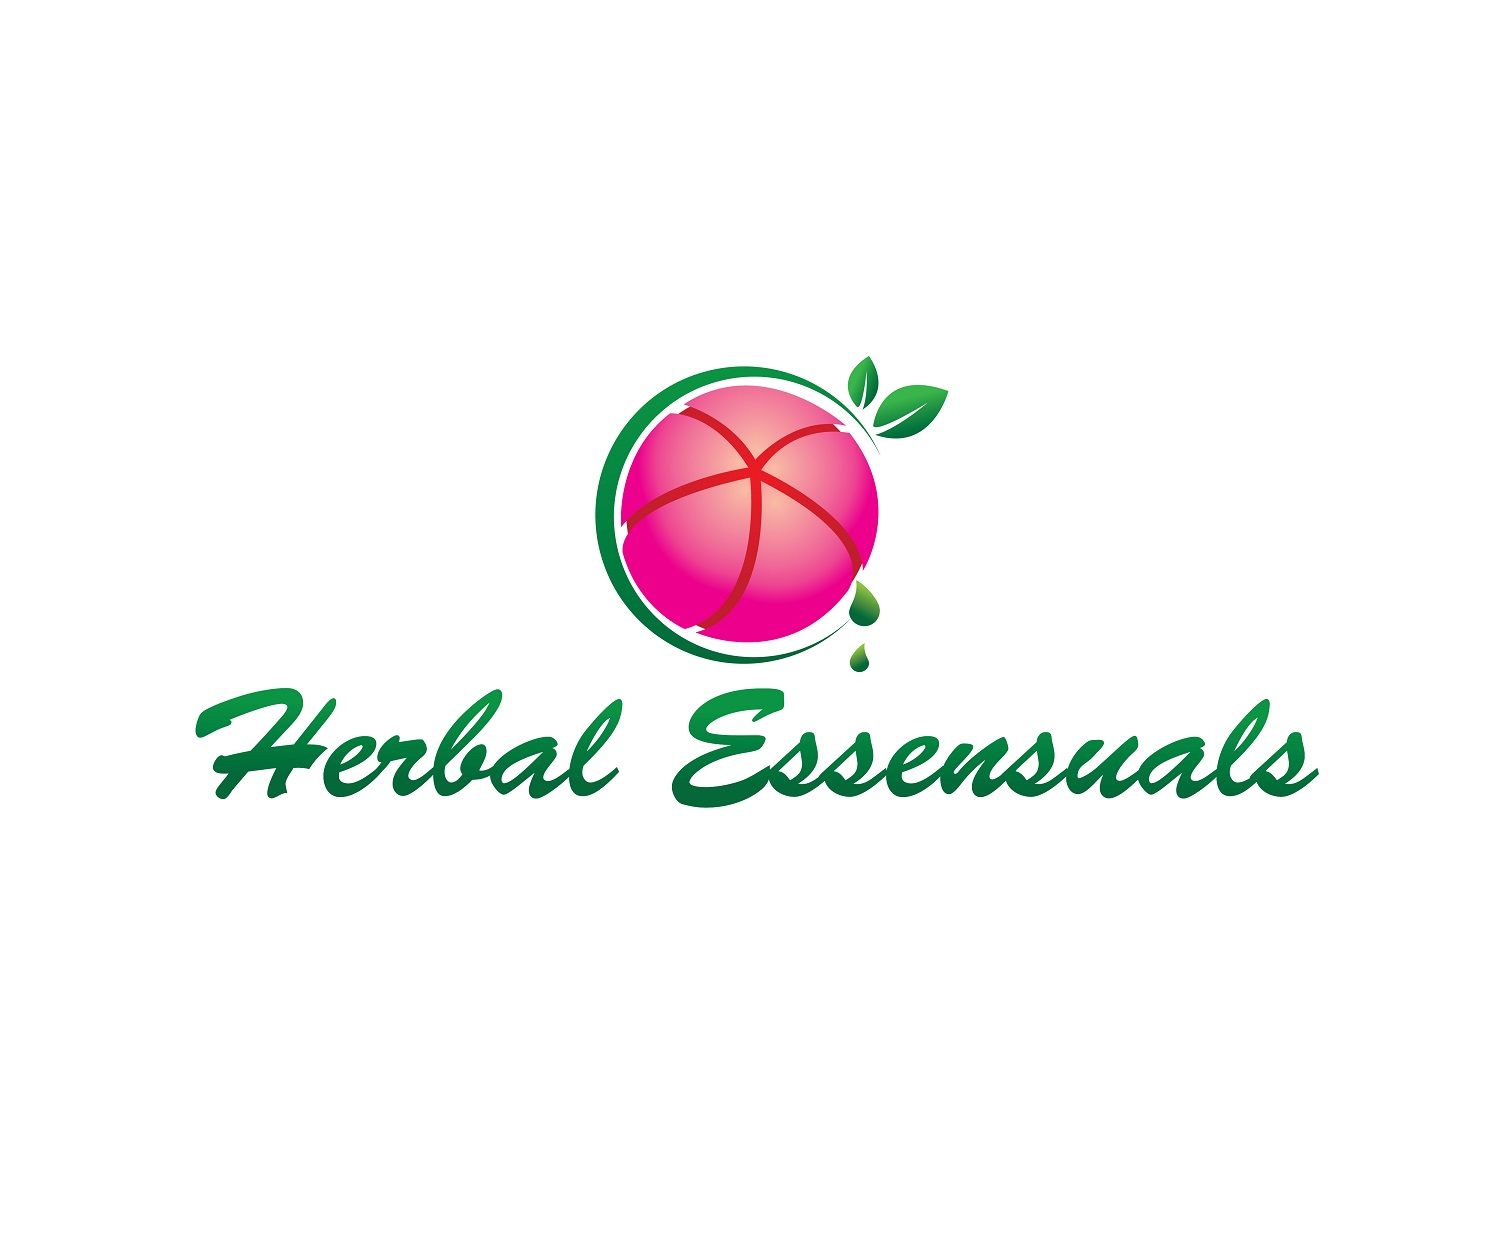 Logo Design by jhunzkie24 - Entry No. 65 in the Logo Design Contest Captivating Logo Design for Herbal Essensuals.